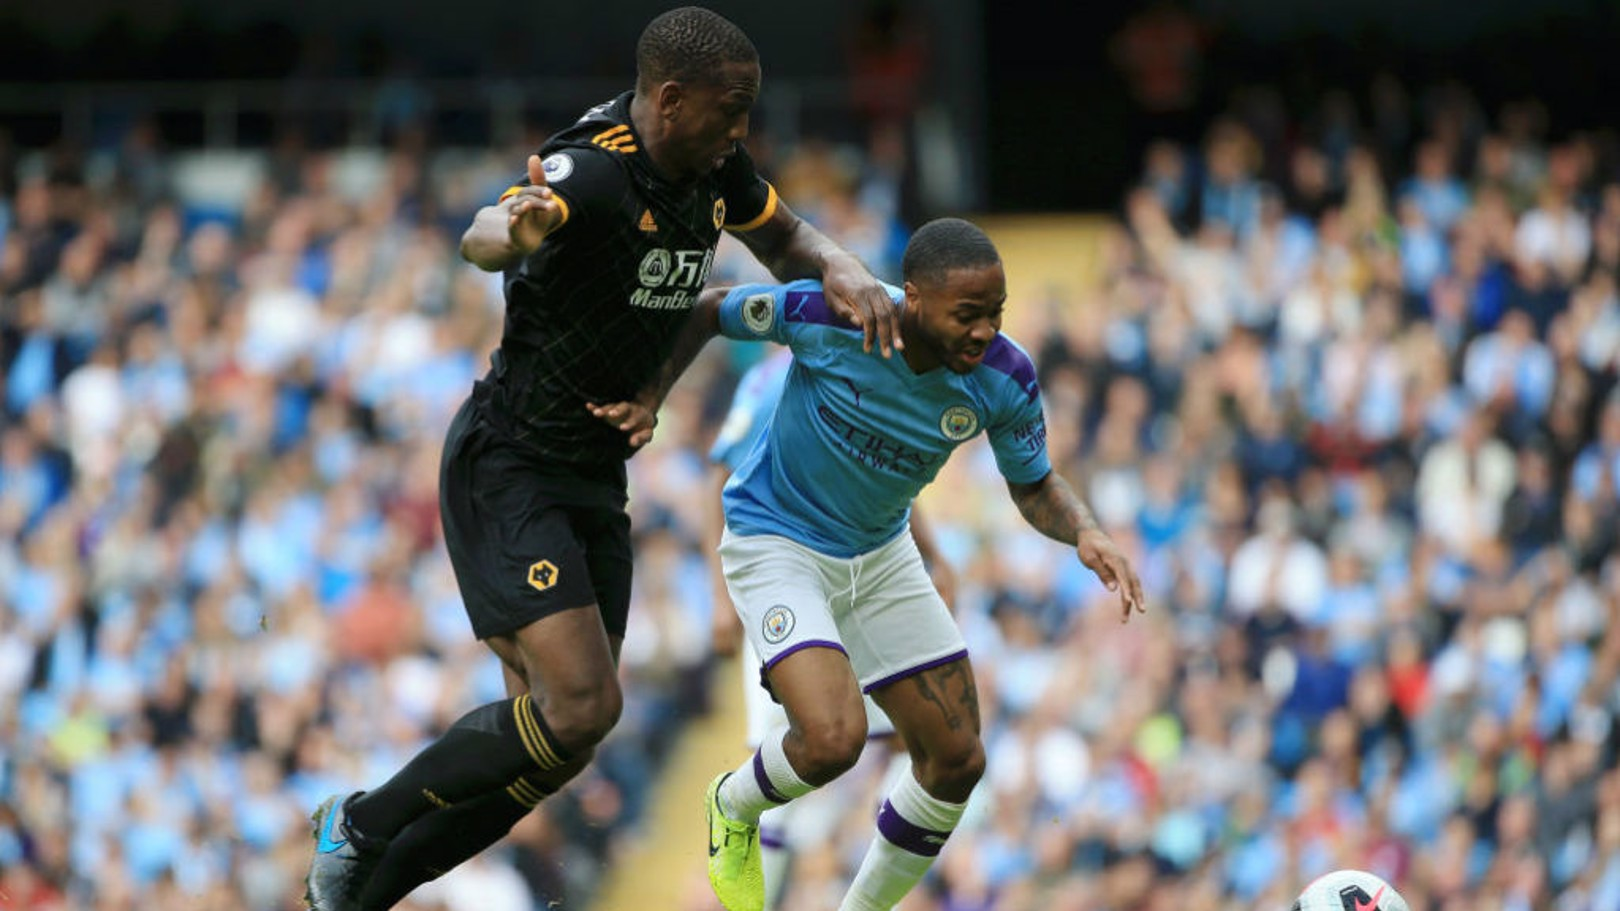 AMAZON PRIME: Watch City take on Wolves and Burnley in December